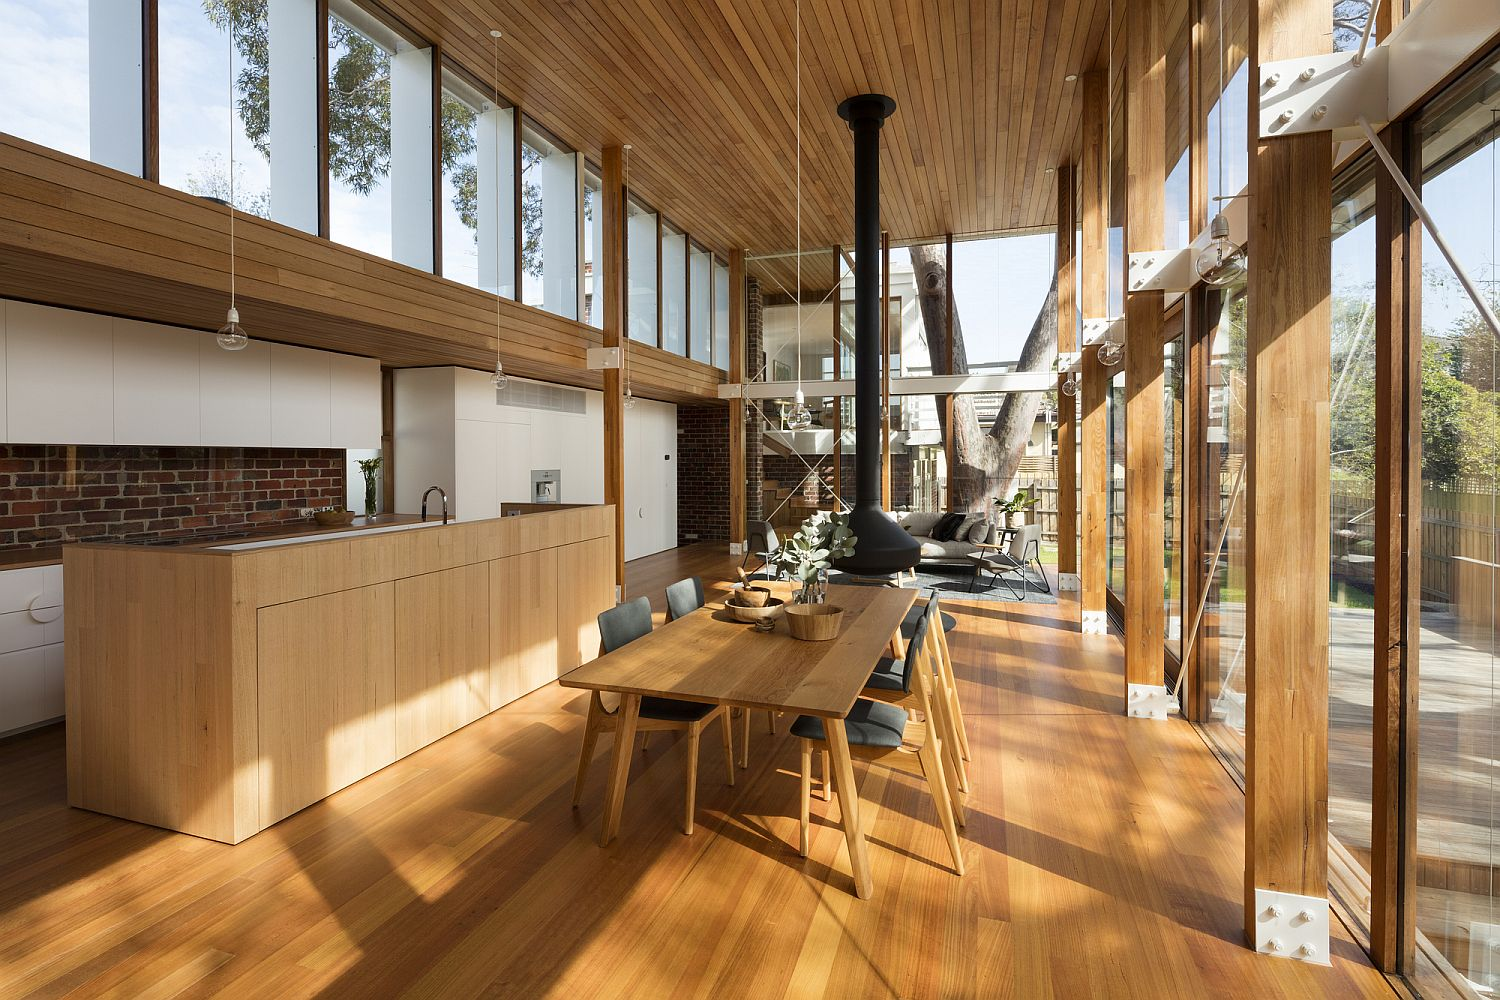 Clerestory windows bring in more natural light